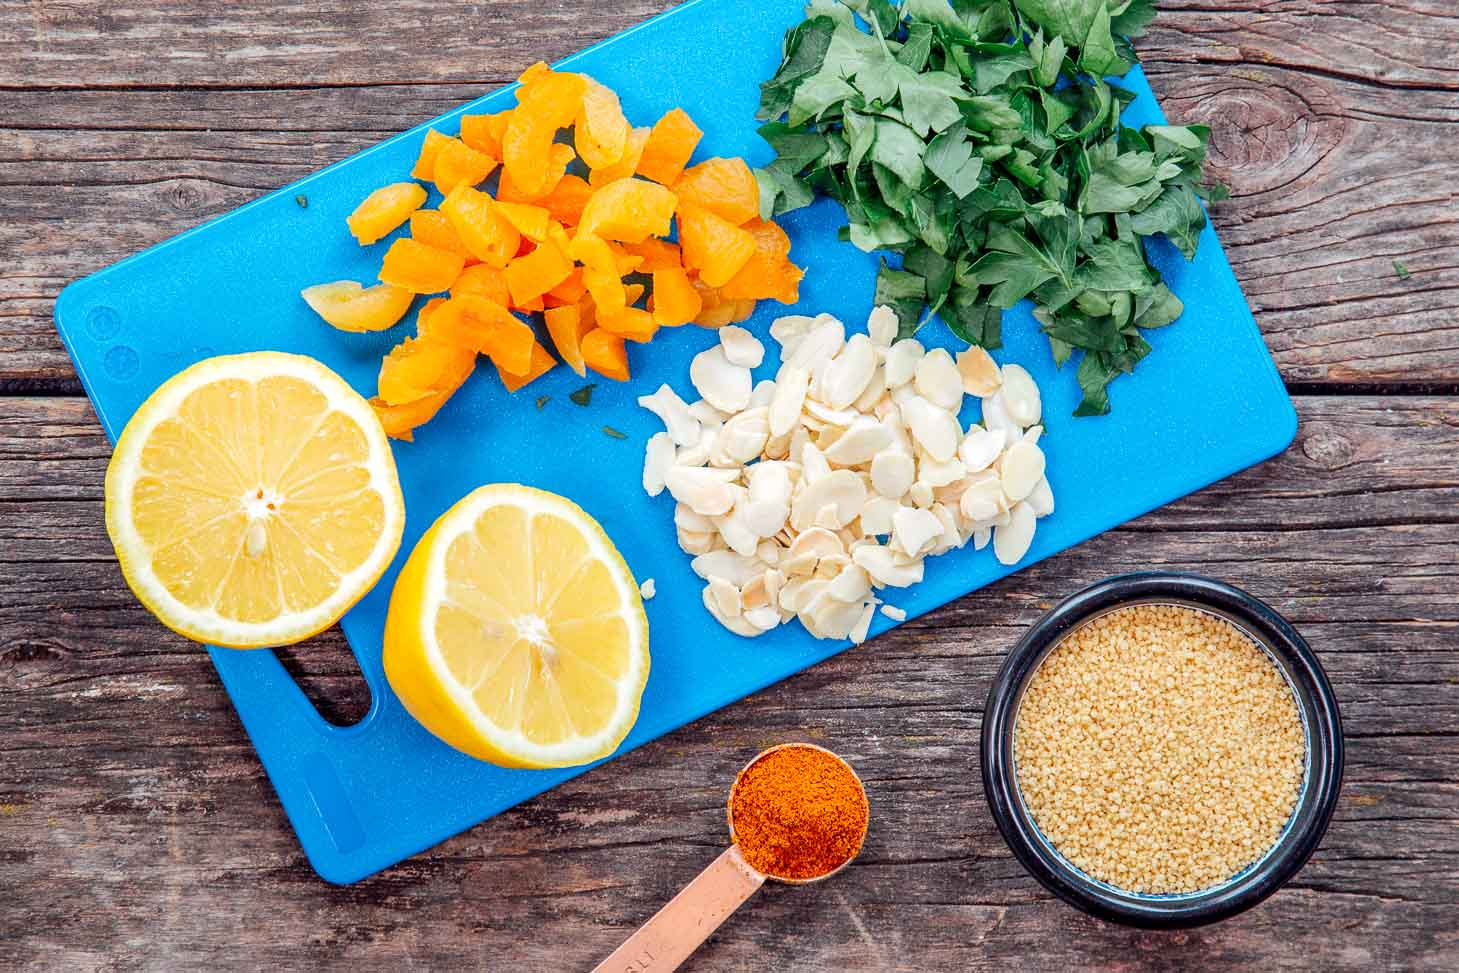 Ingredients for Moroccan spiced couscous on a cutting board